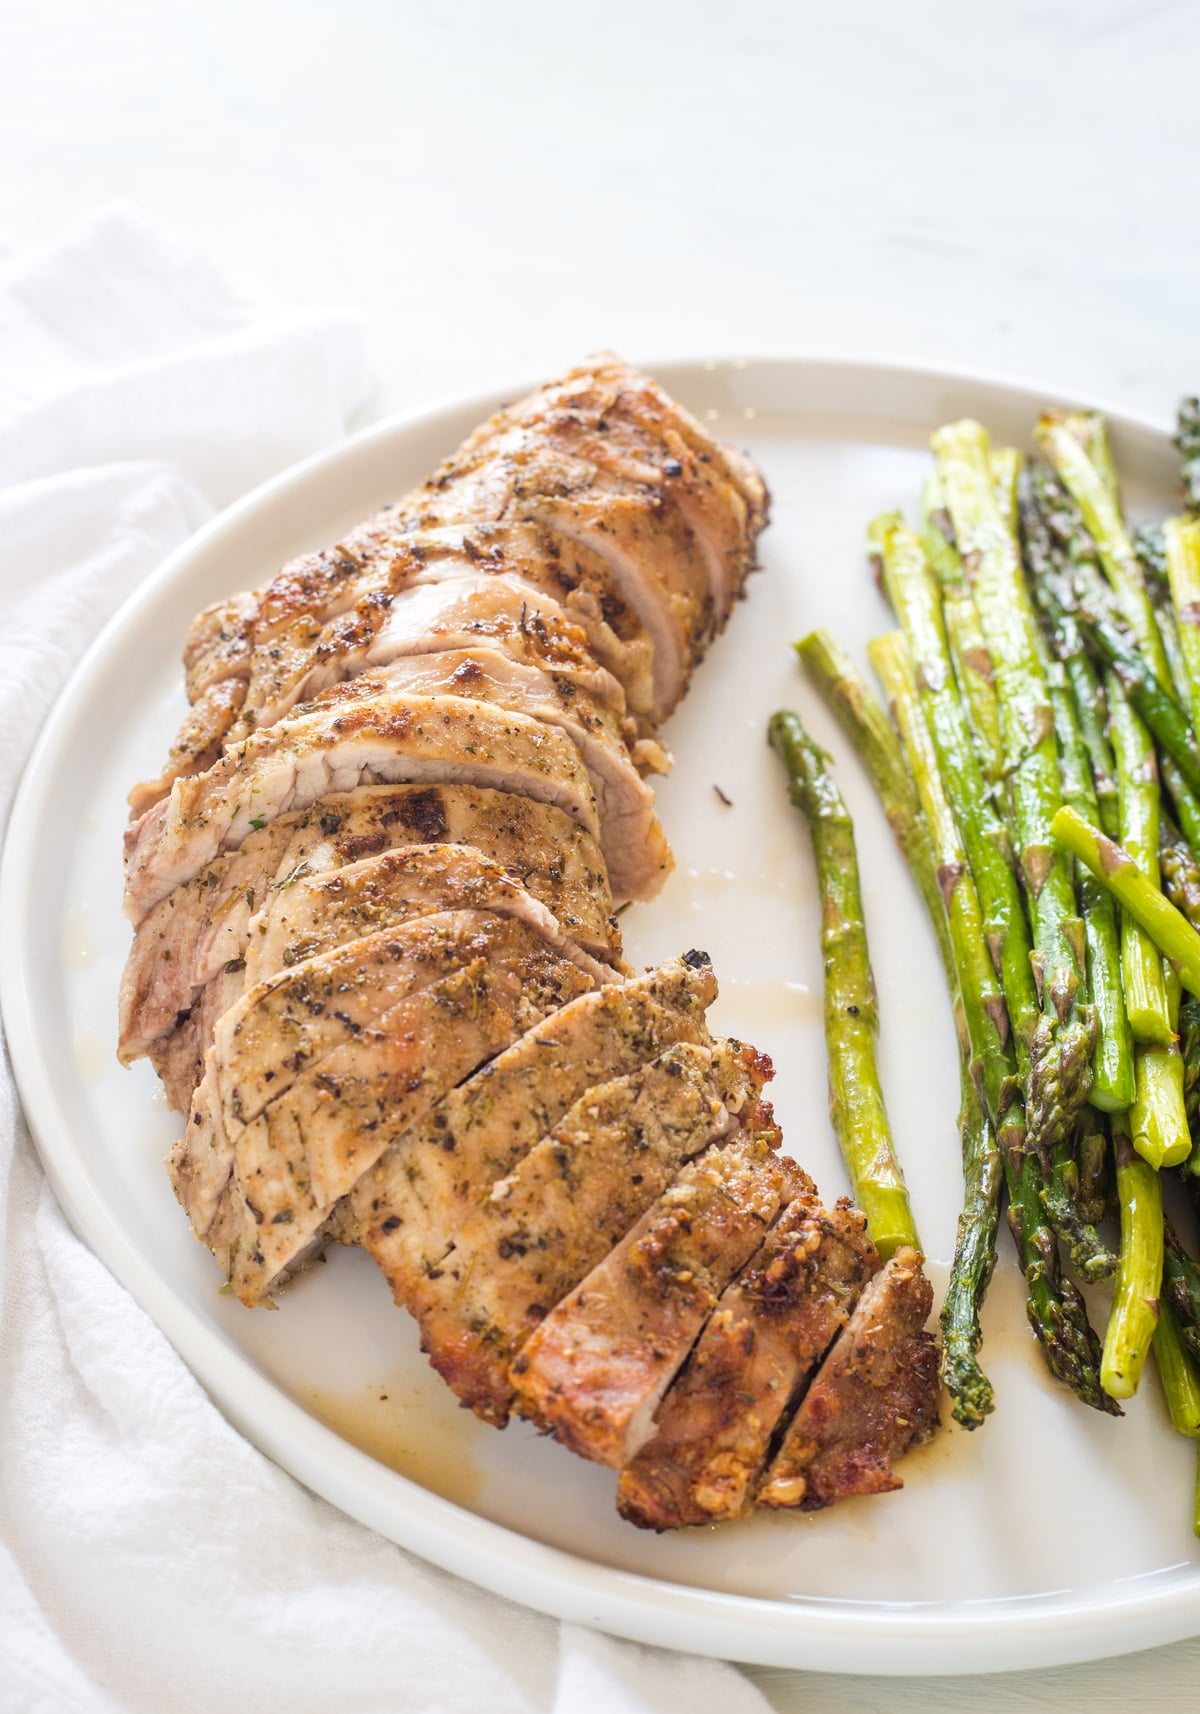 Looking at a cooked and sliced pork tenderloin on a white plate with asparagus